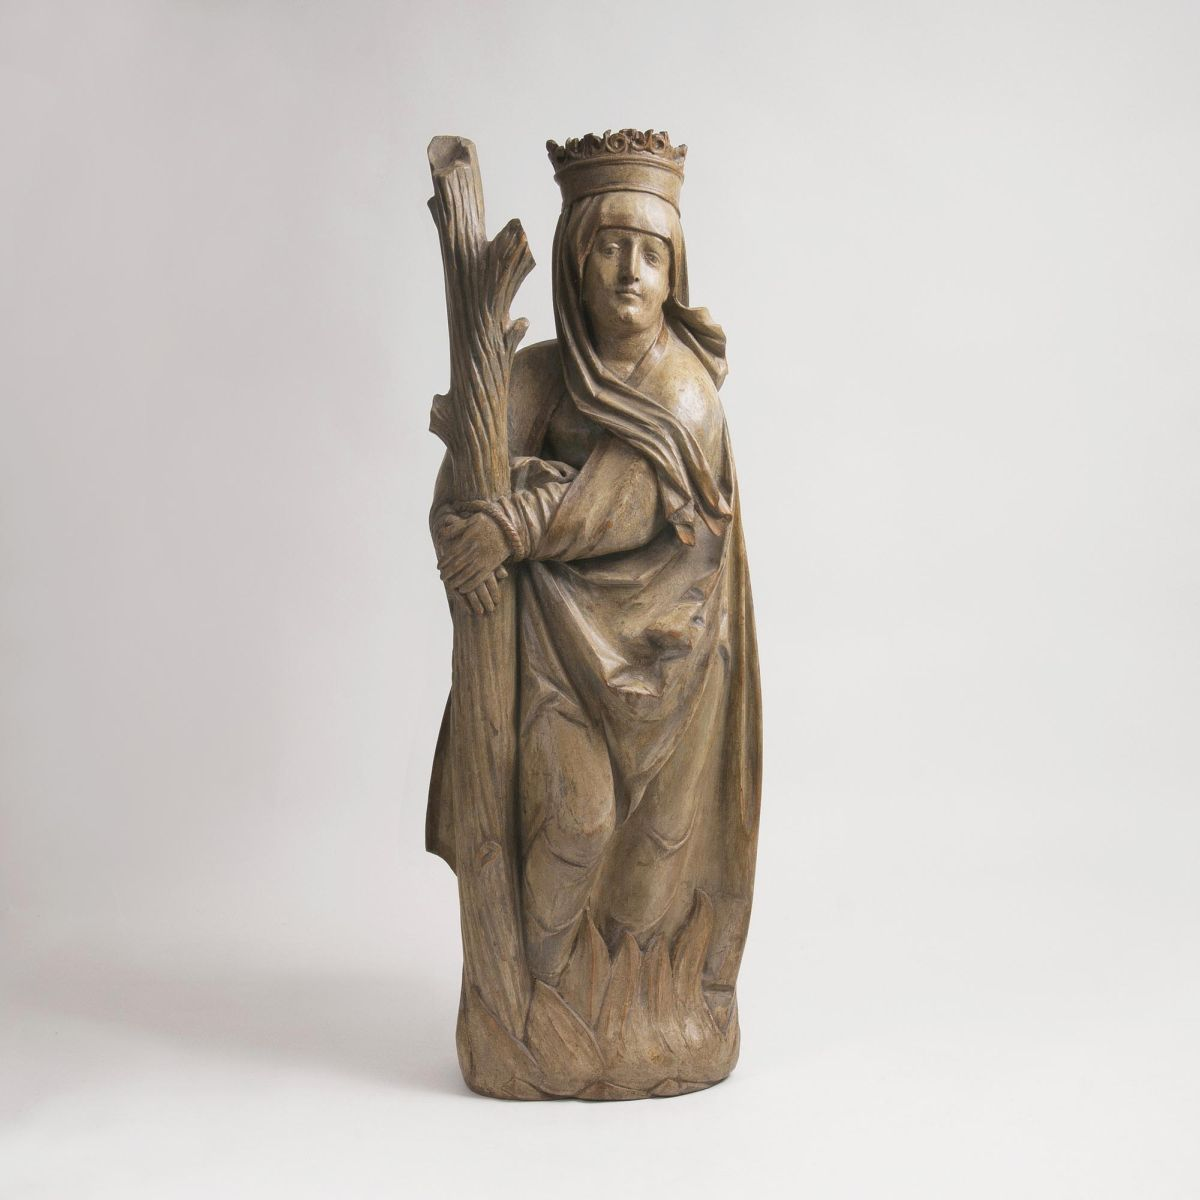 A late Gothic Sculpture of Saint Afra